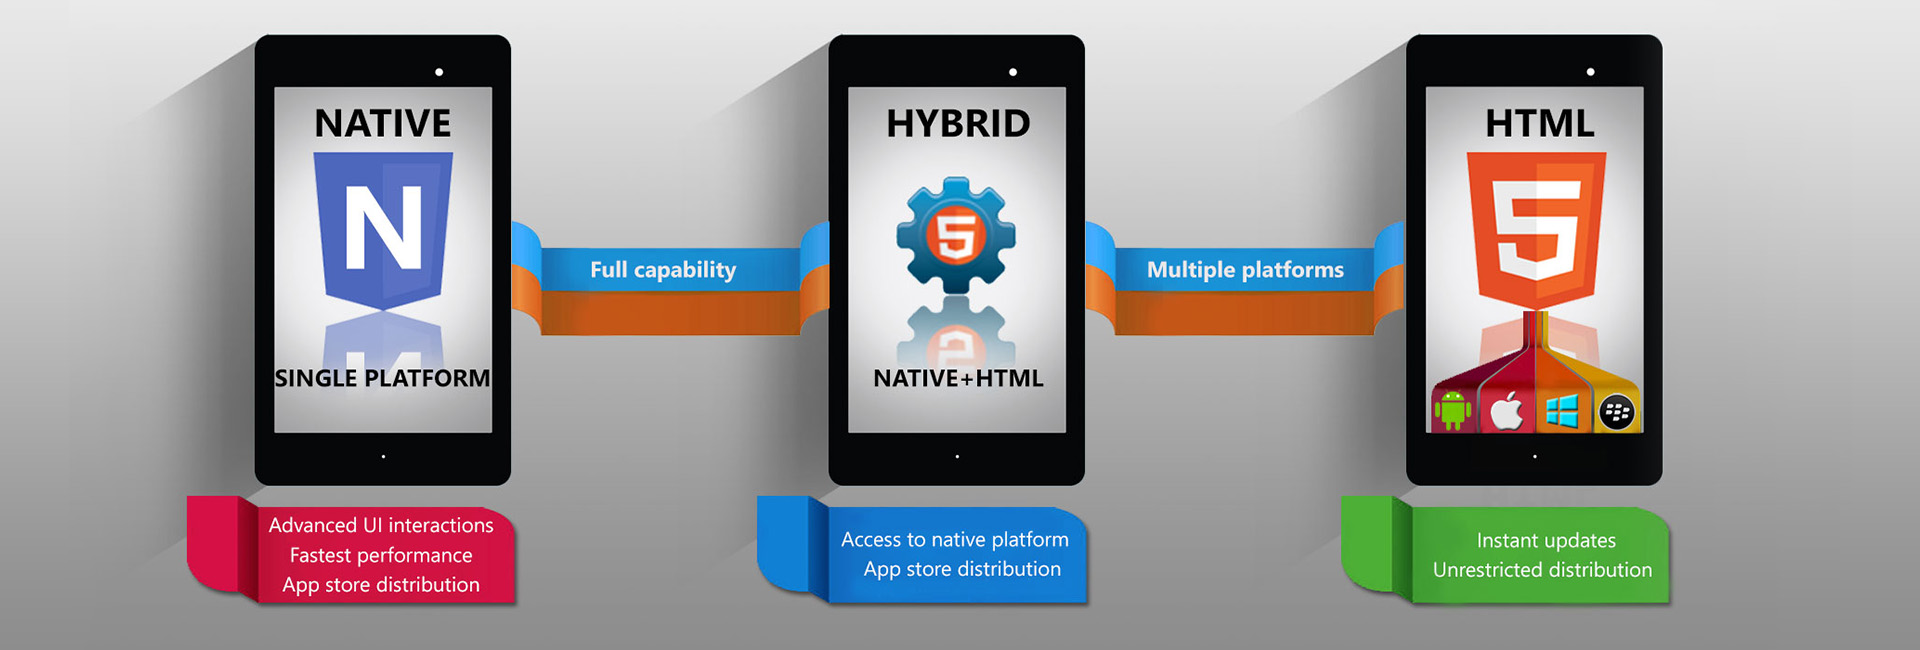 Web, Hybrid Or Native Apps? What's The Difference? - Image 1